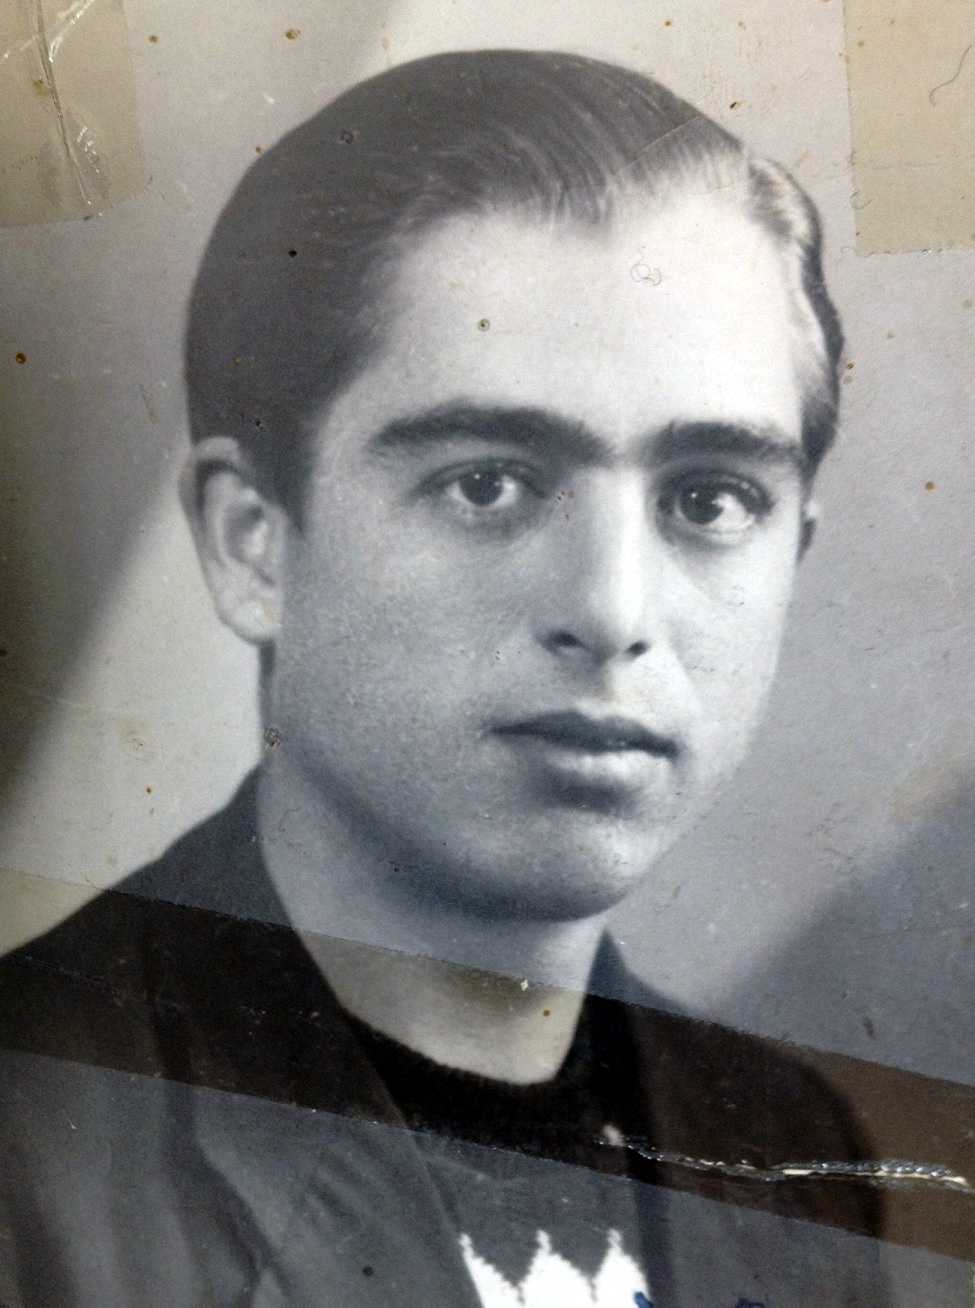 Luis Gallego Ponce